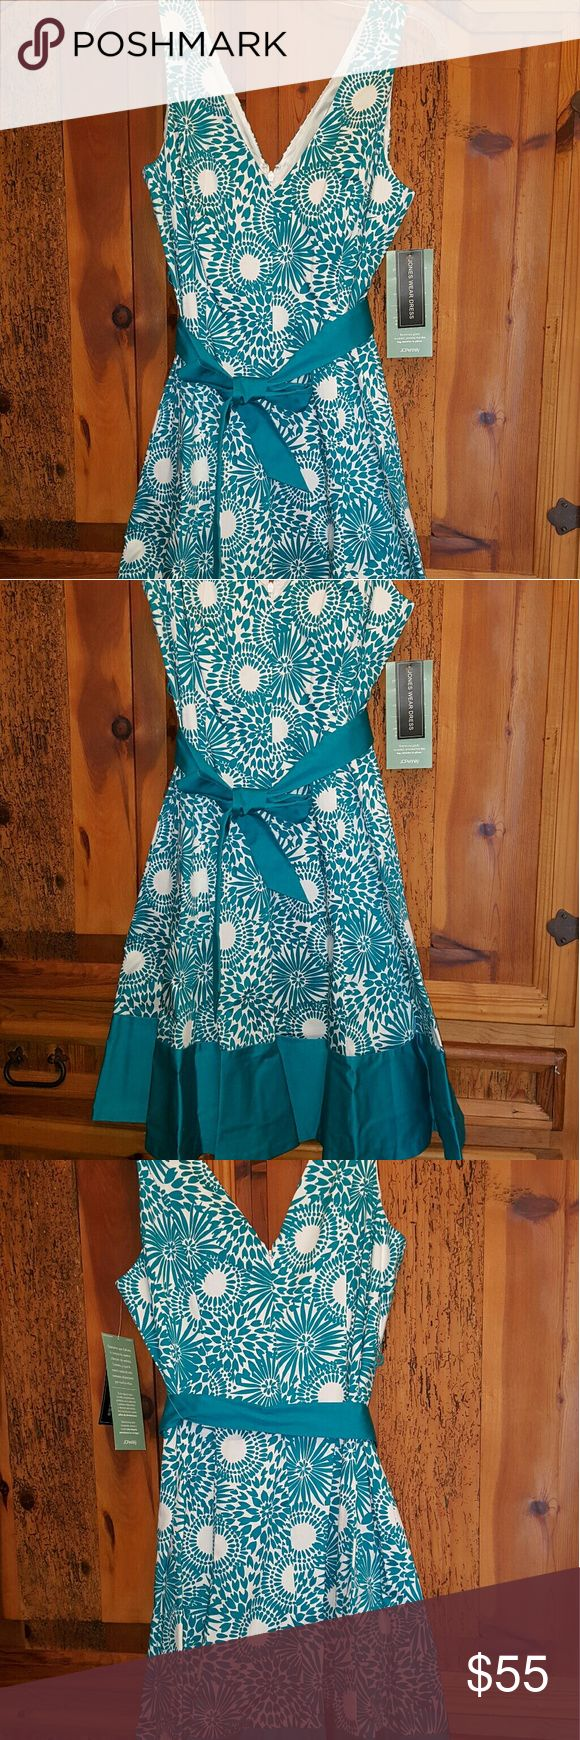 Jones dress size 16 NWT Georgeous womens dress size 16 by Jones wear NWT. Flair bottom with brilliant turquoise coloring and silk lined, this is beautiful on. Jones New York Dresses